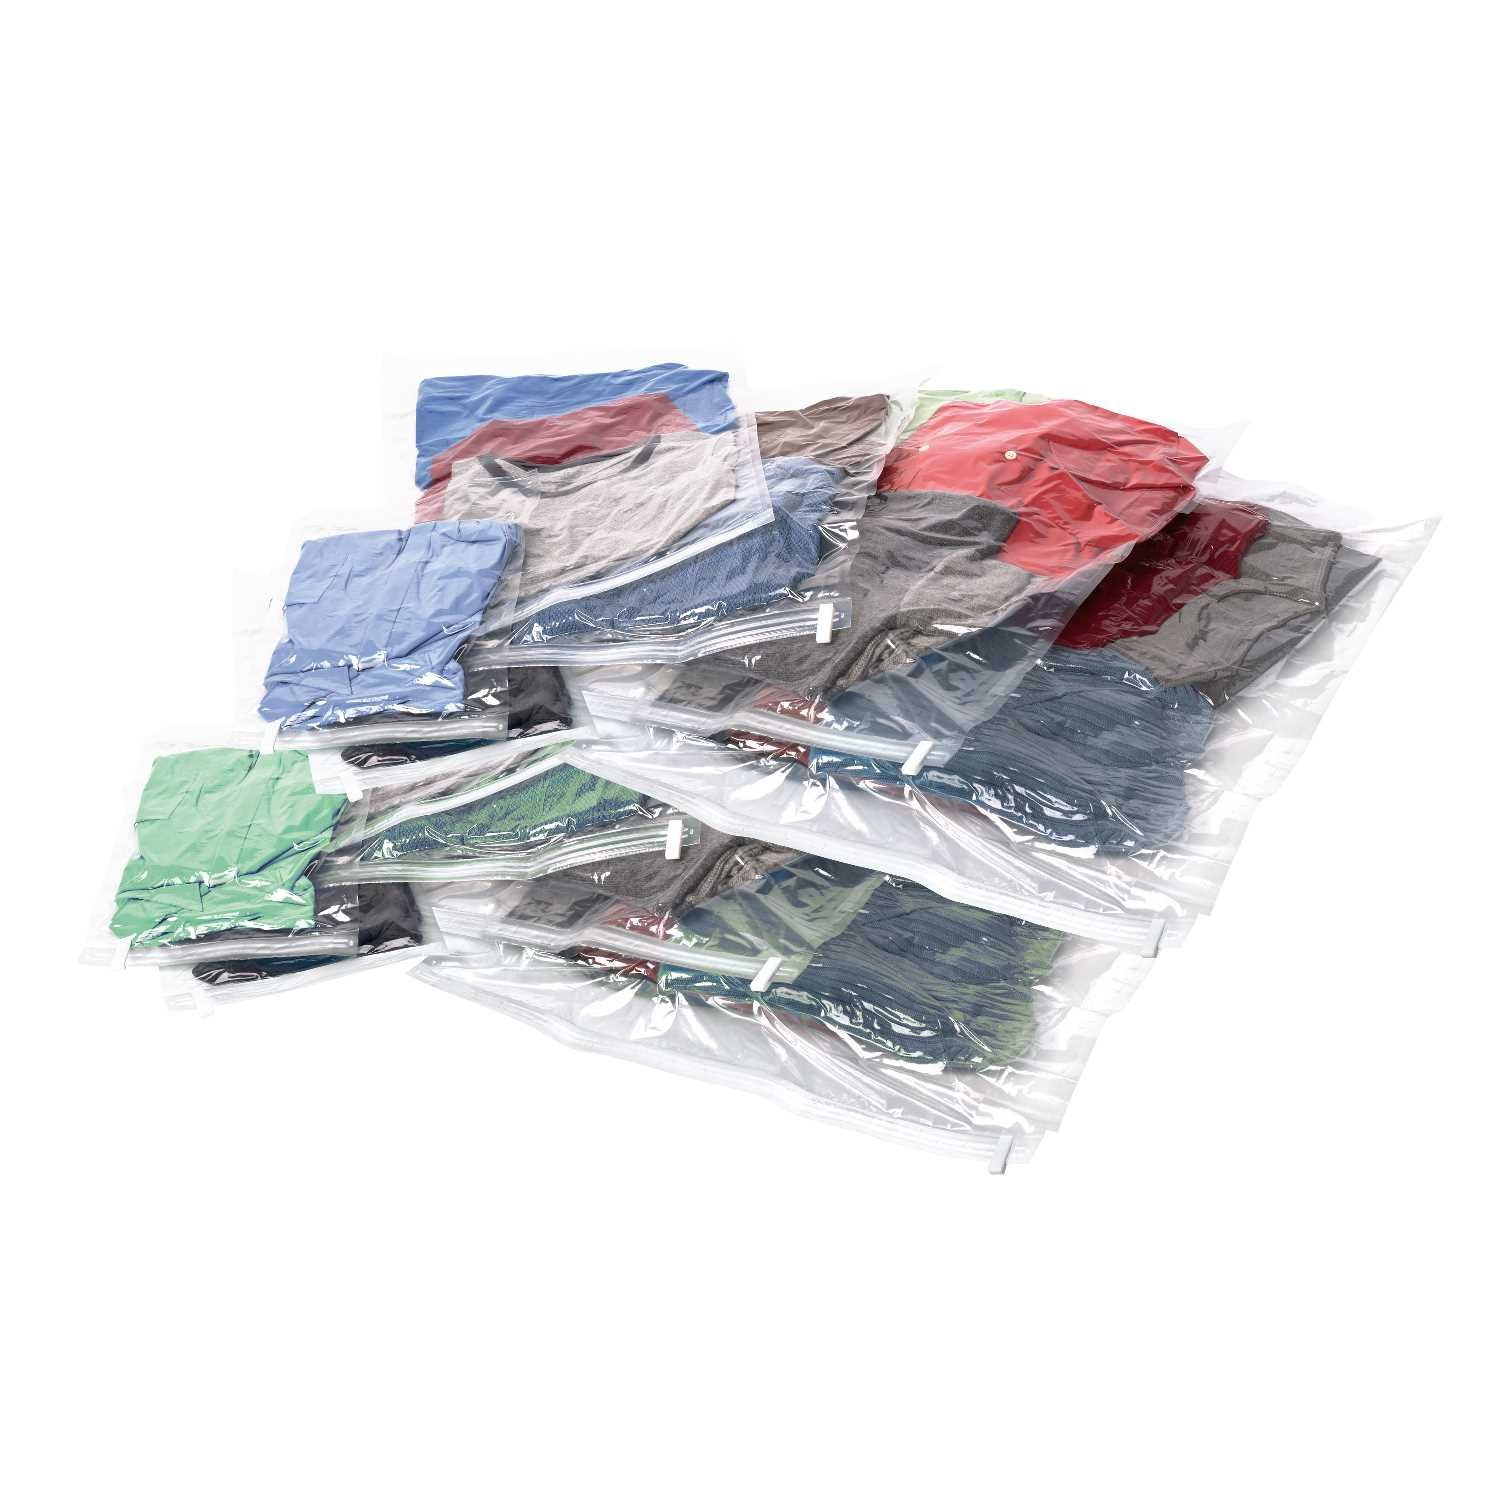 Samsonite Luggage 12 Piece Compression Bag Kit, Clear, One Size